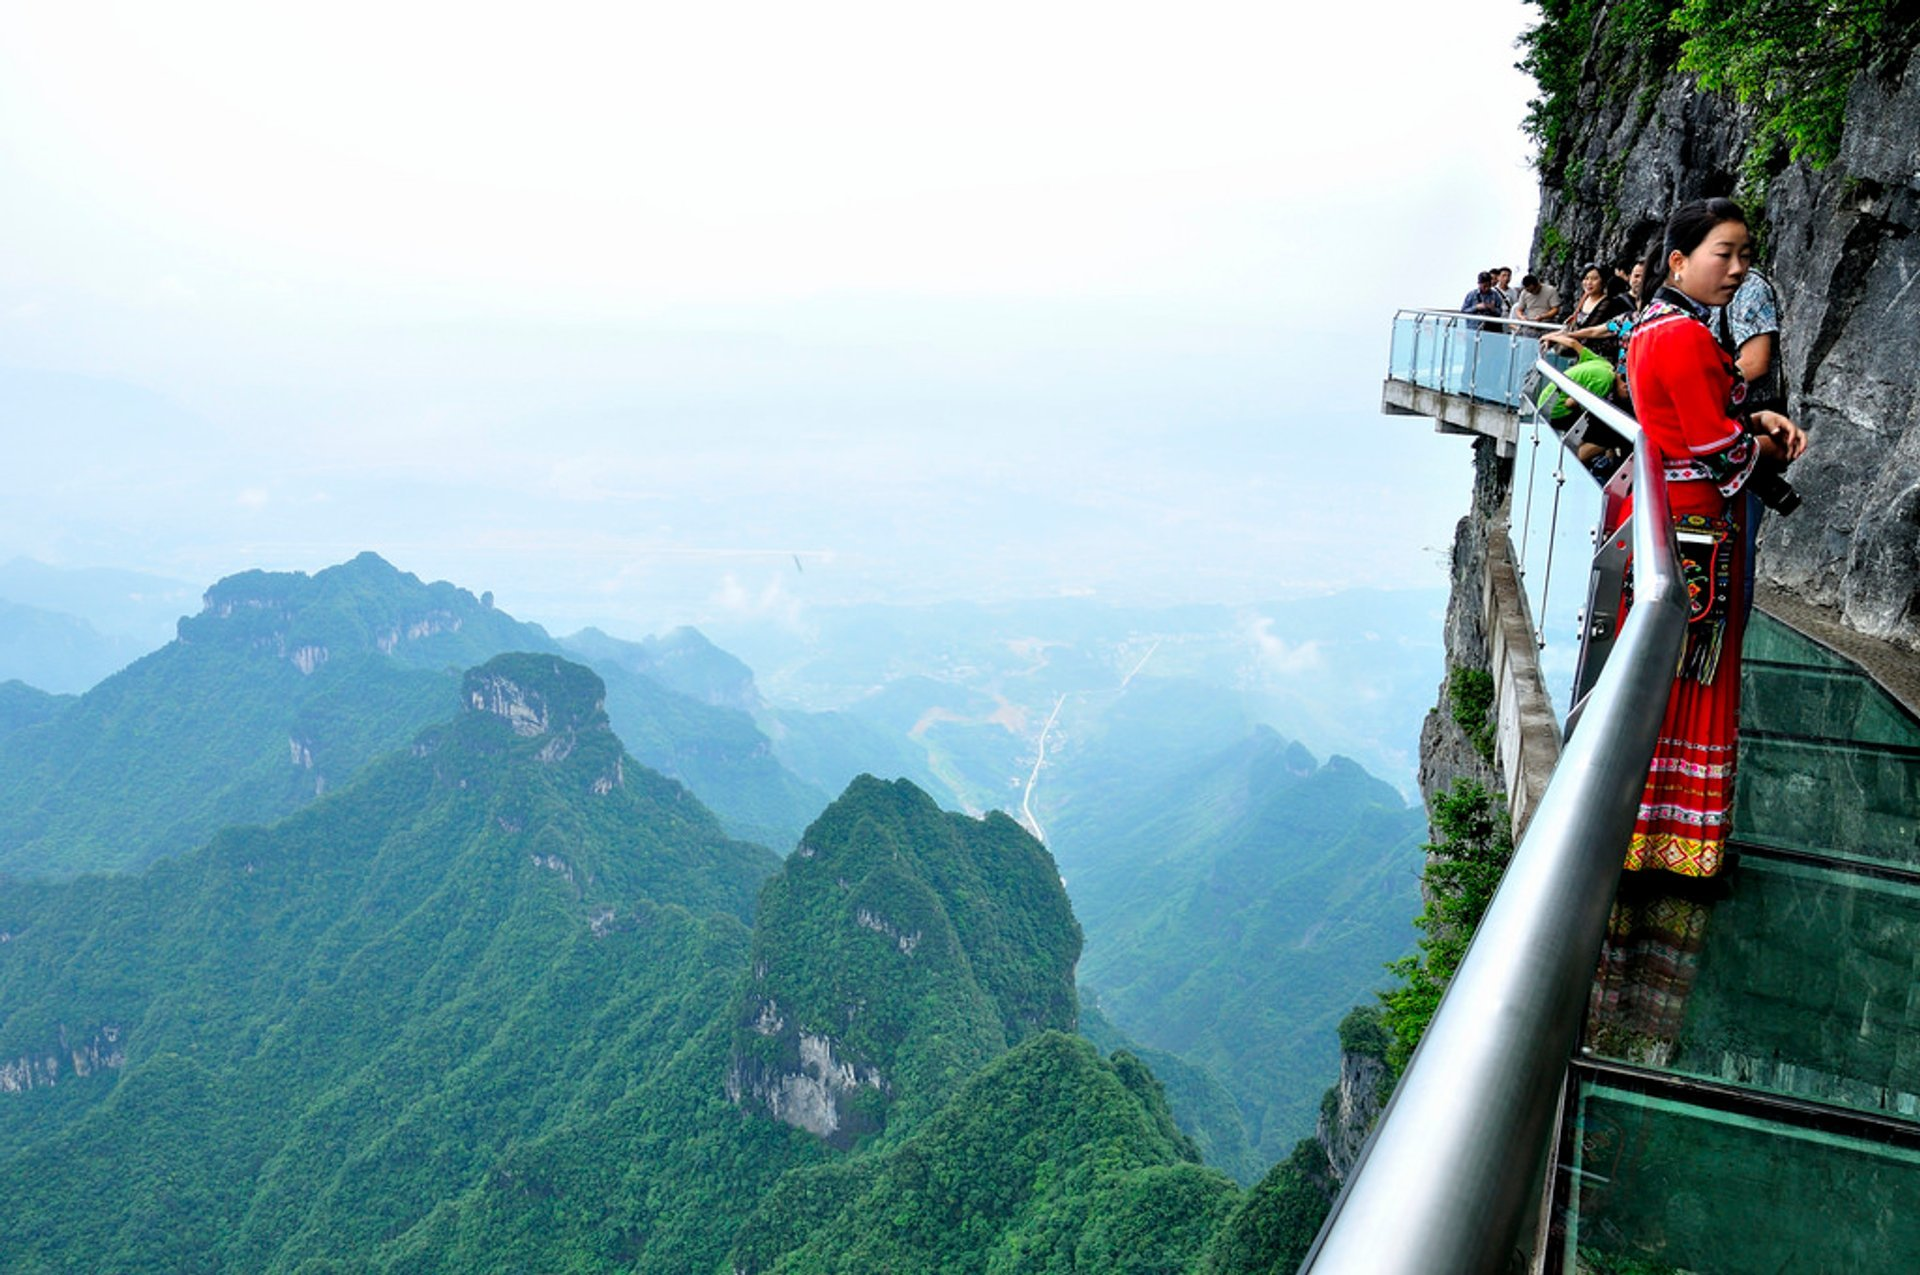 Glass Plank Road at Tianmen Mountain in China 2020 - Best Time